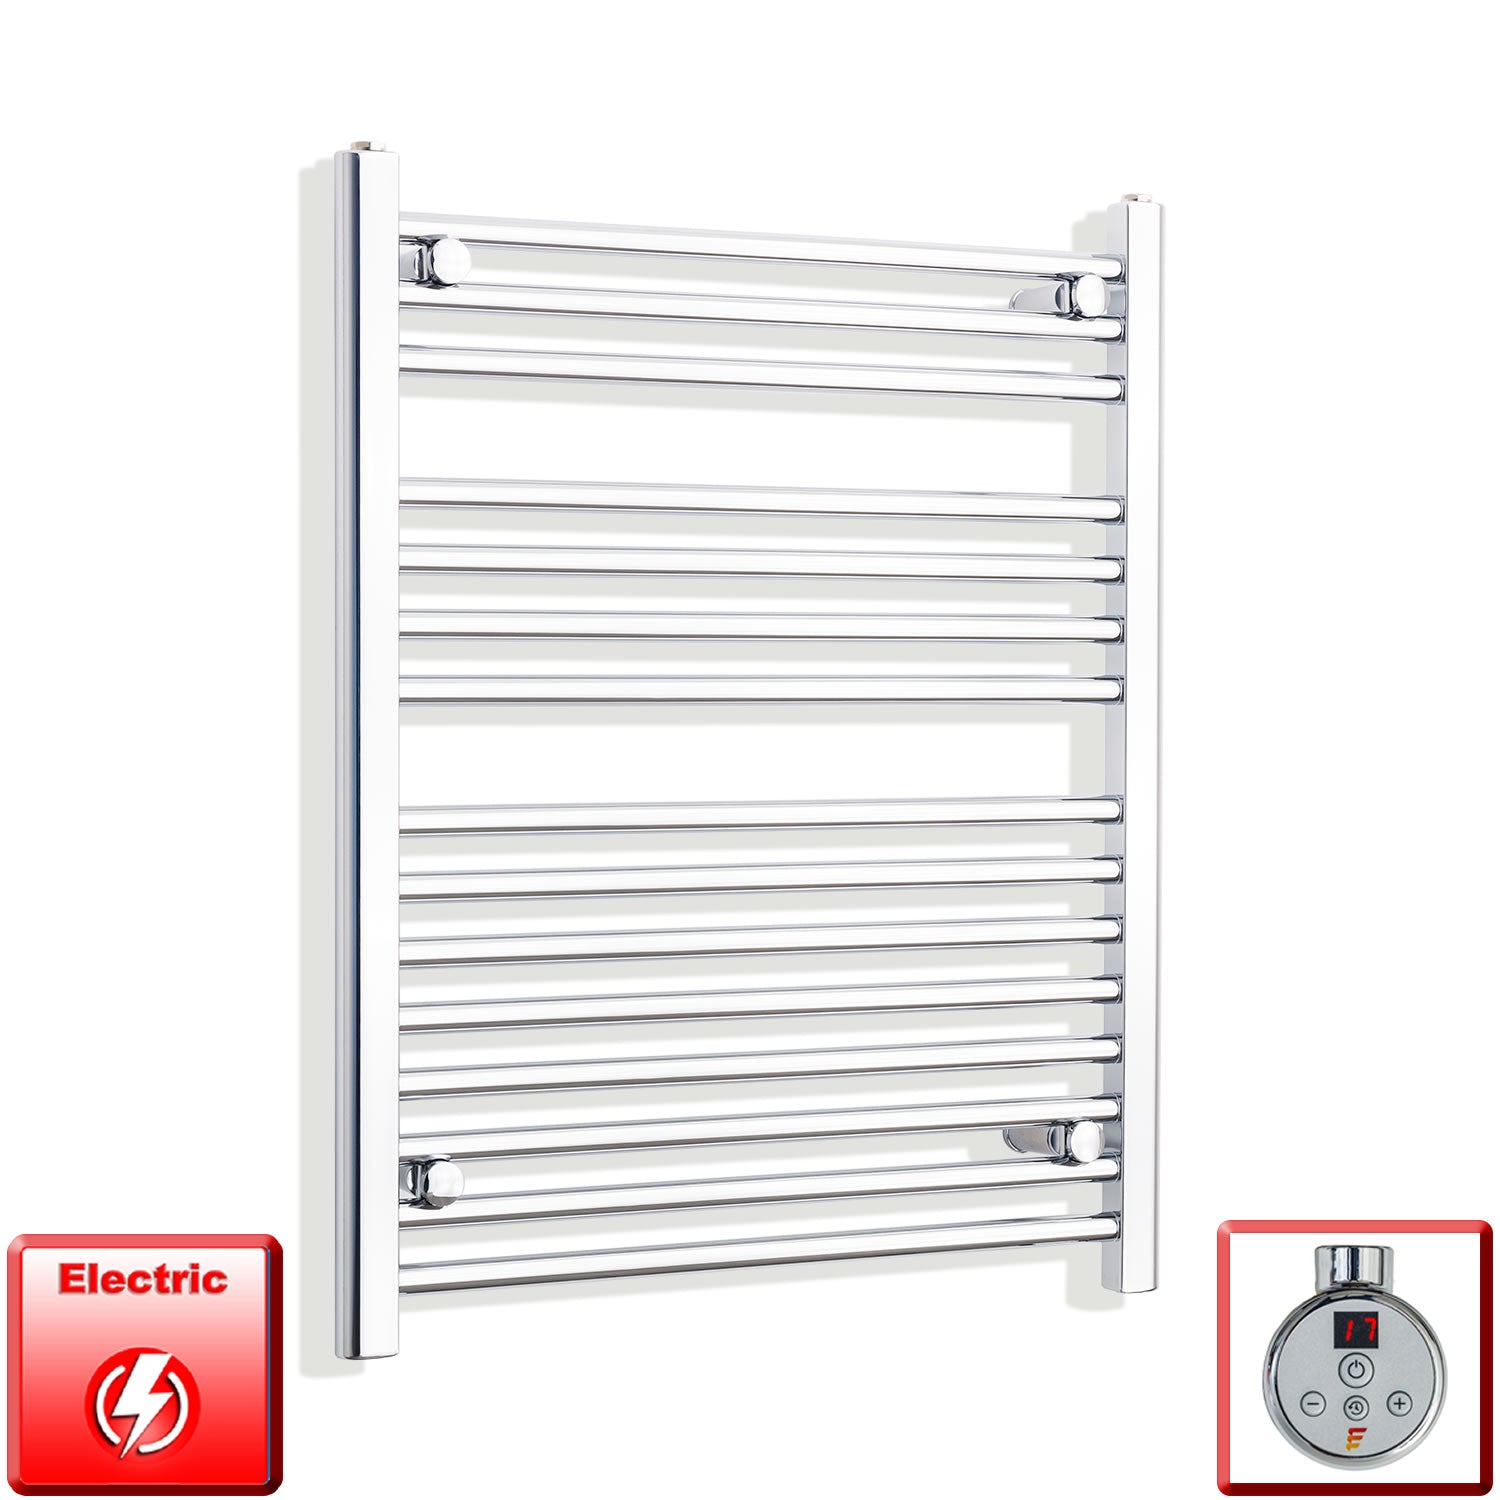 650mm Wide 800mm High Flat Chrome Pre-Filled Electric Heated Towel Rail Radiator HTR